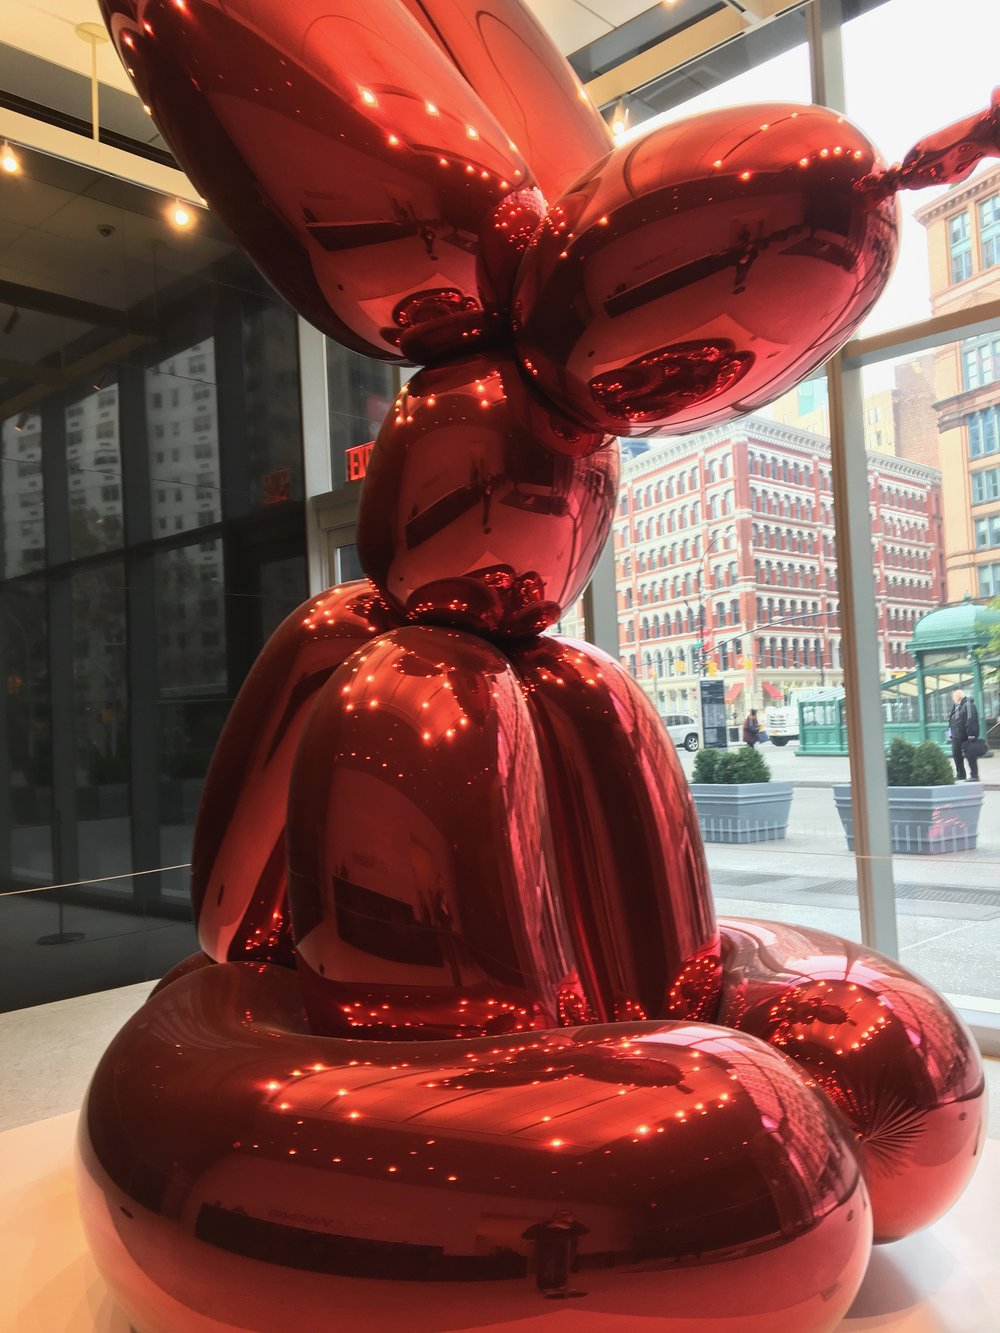 There's a red balloon rabbit sitting in the lobby of 51 Astor Place, but that is not its proper name. -